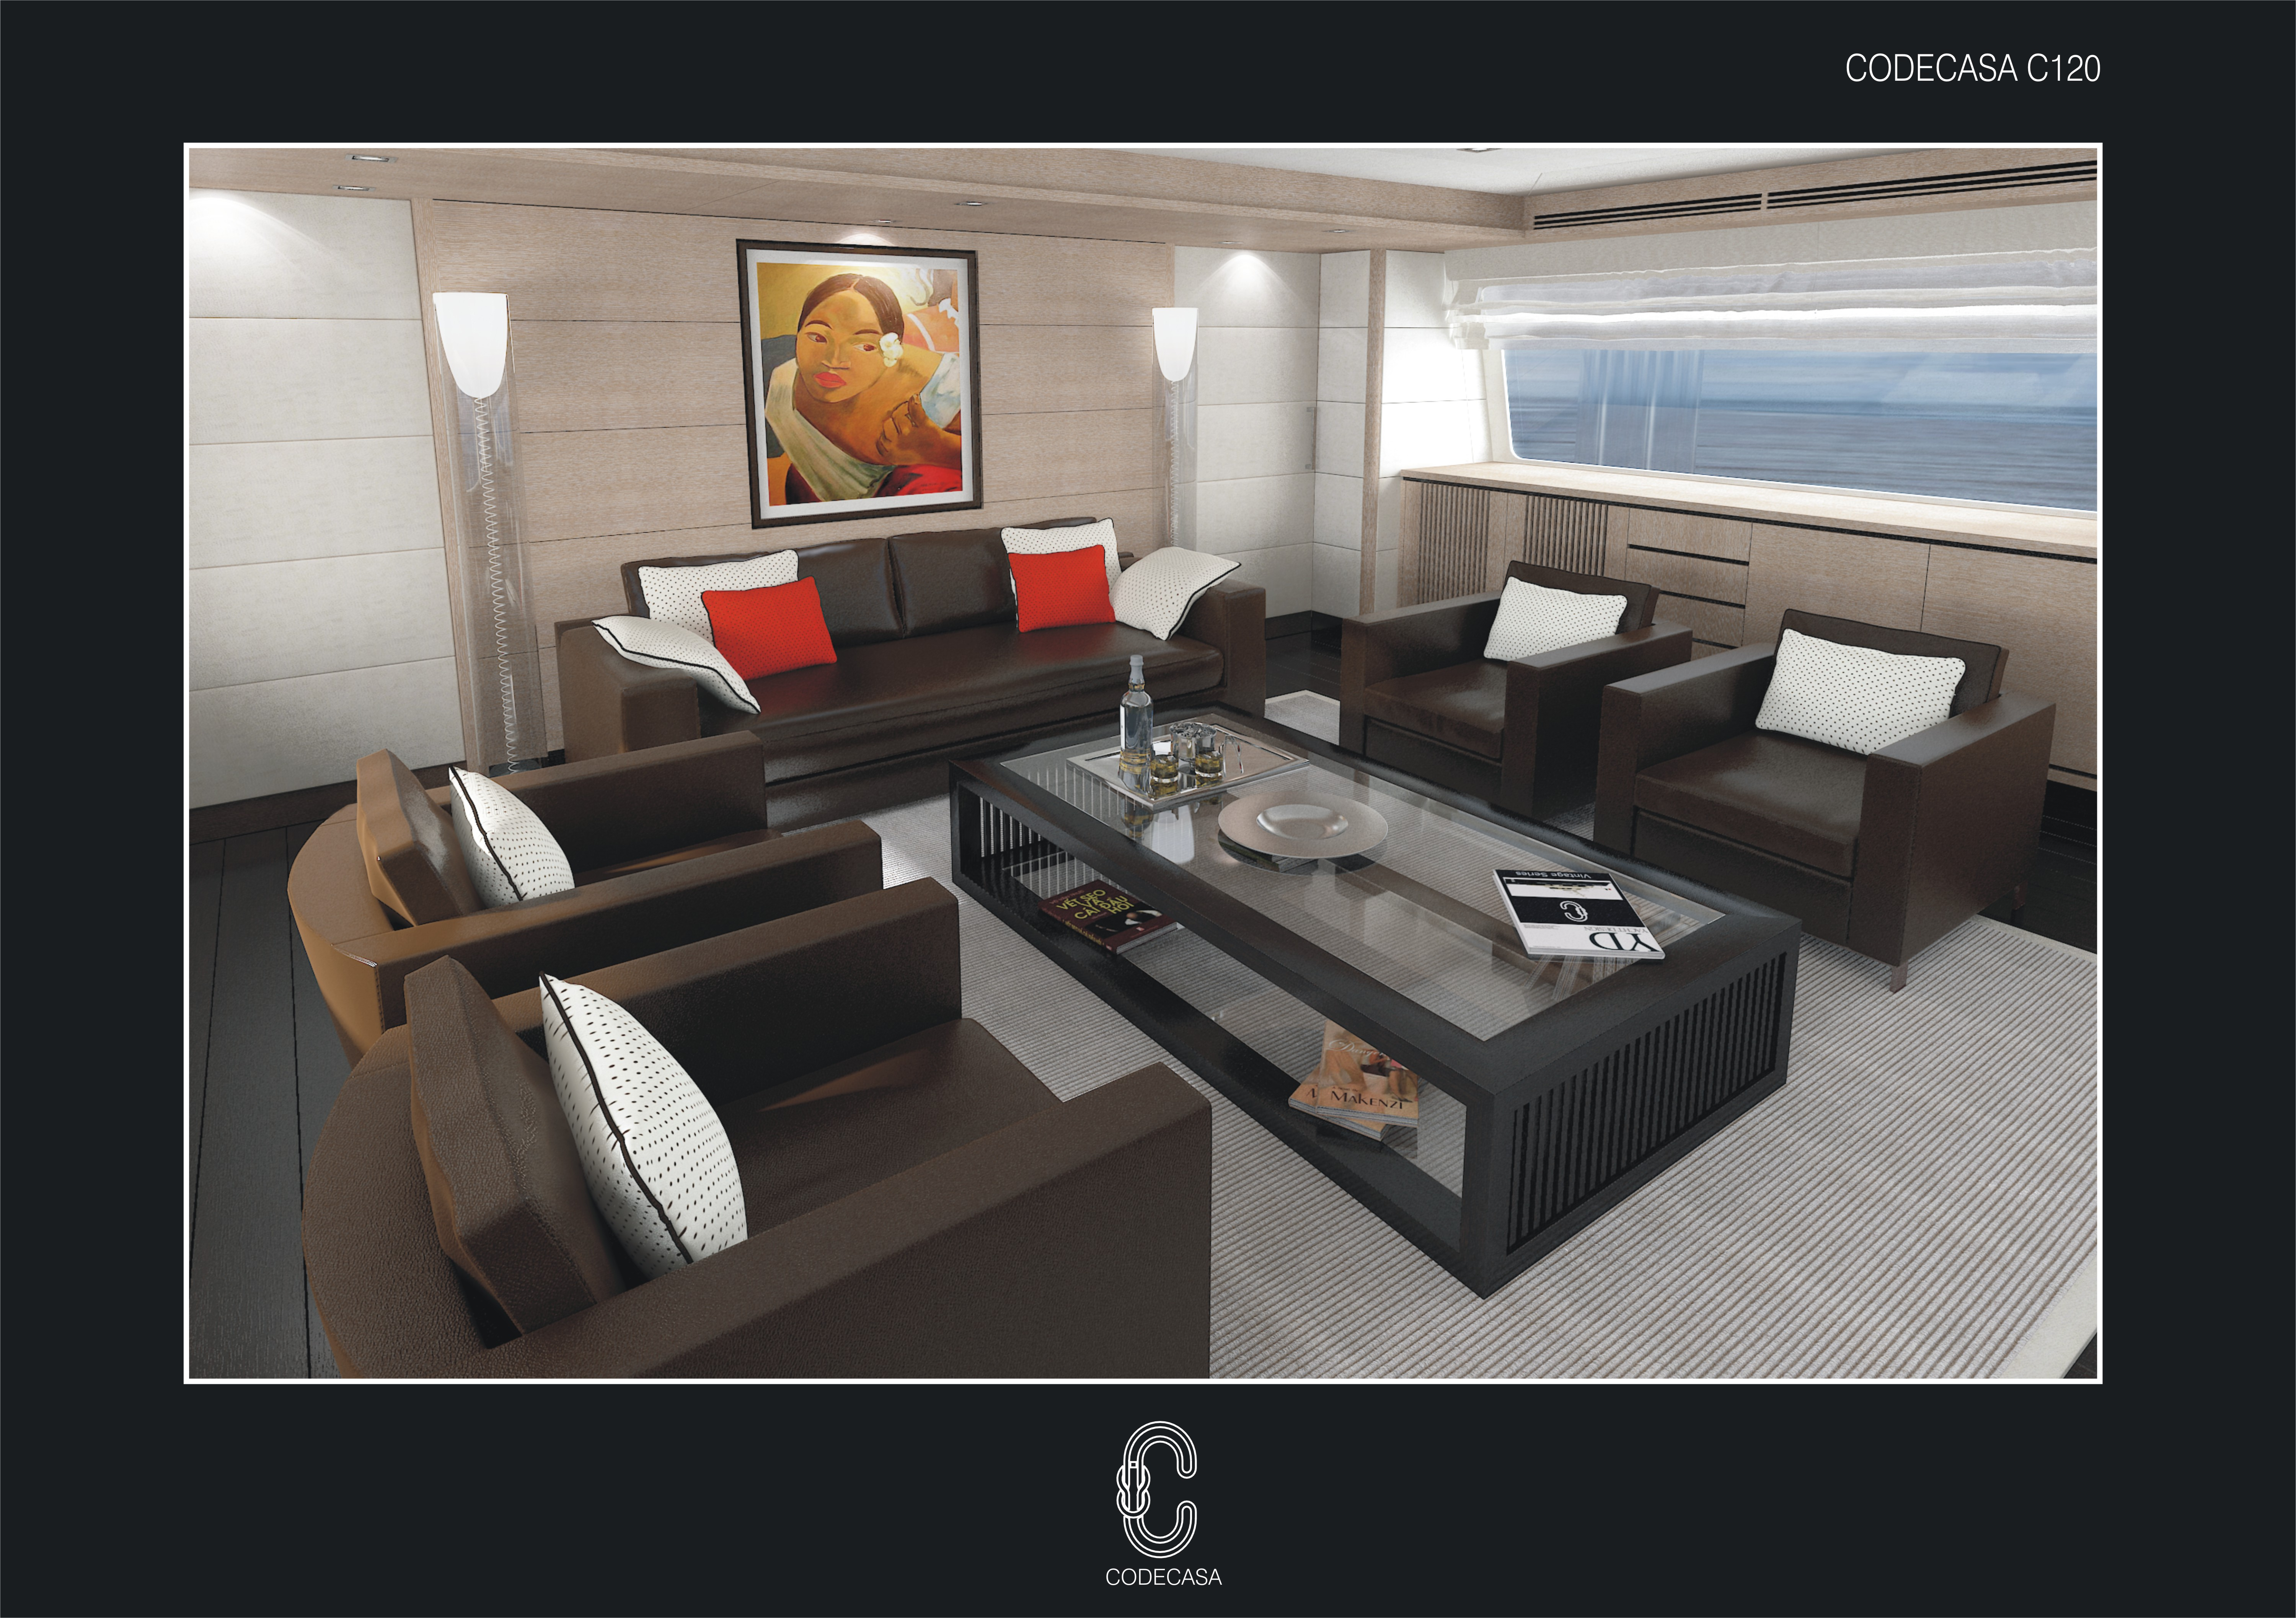 The first interior images of the Codecasa 50s yacht Hull C 120